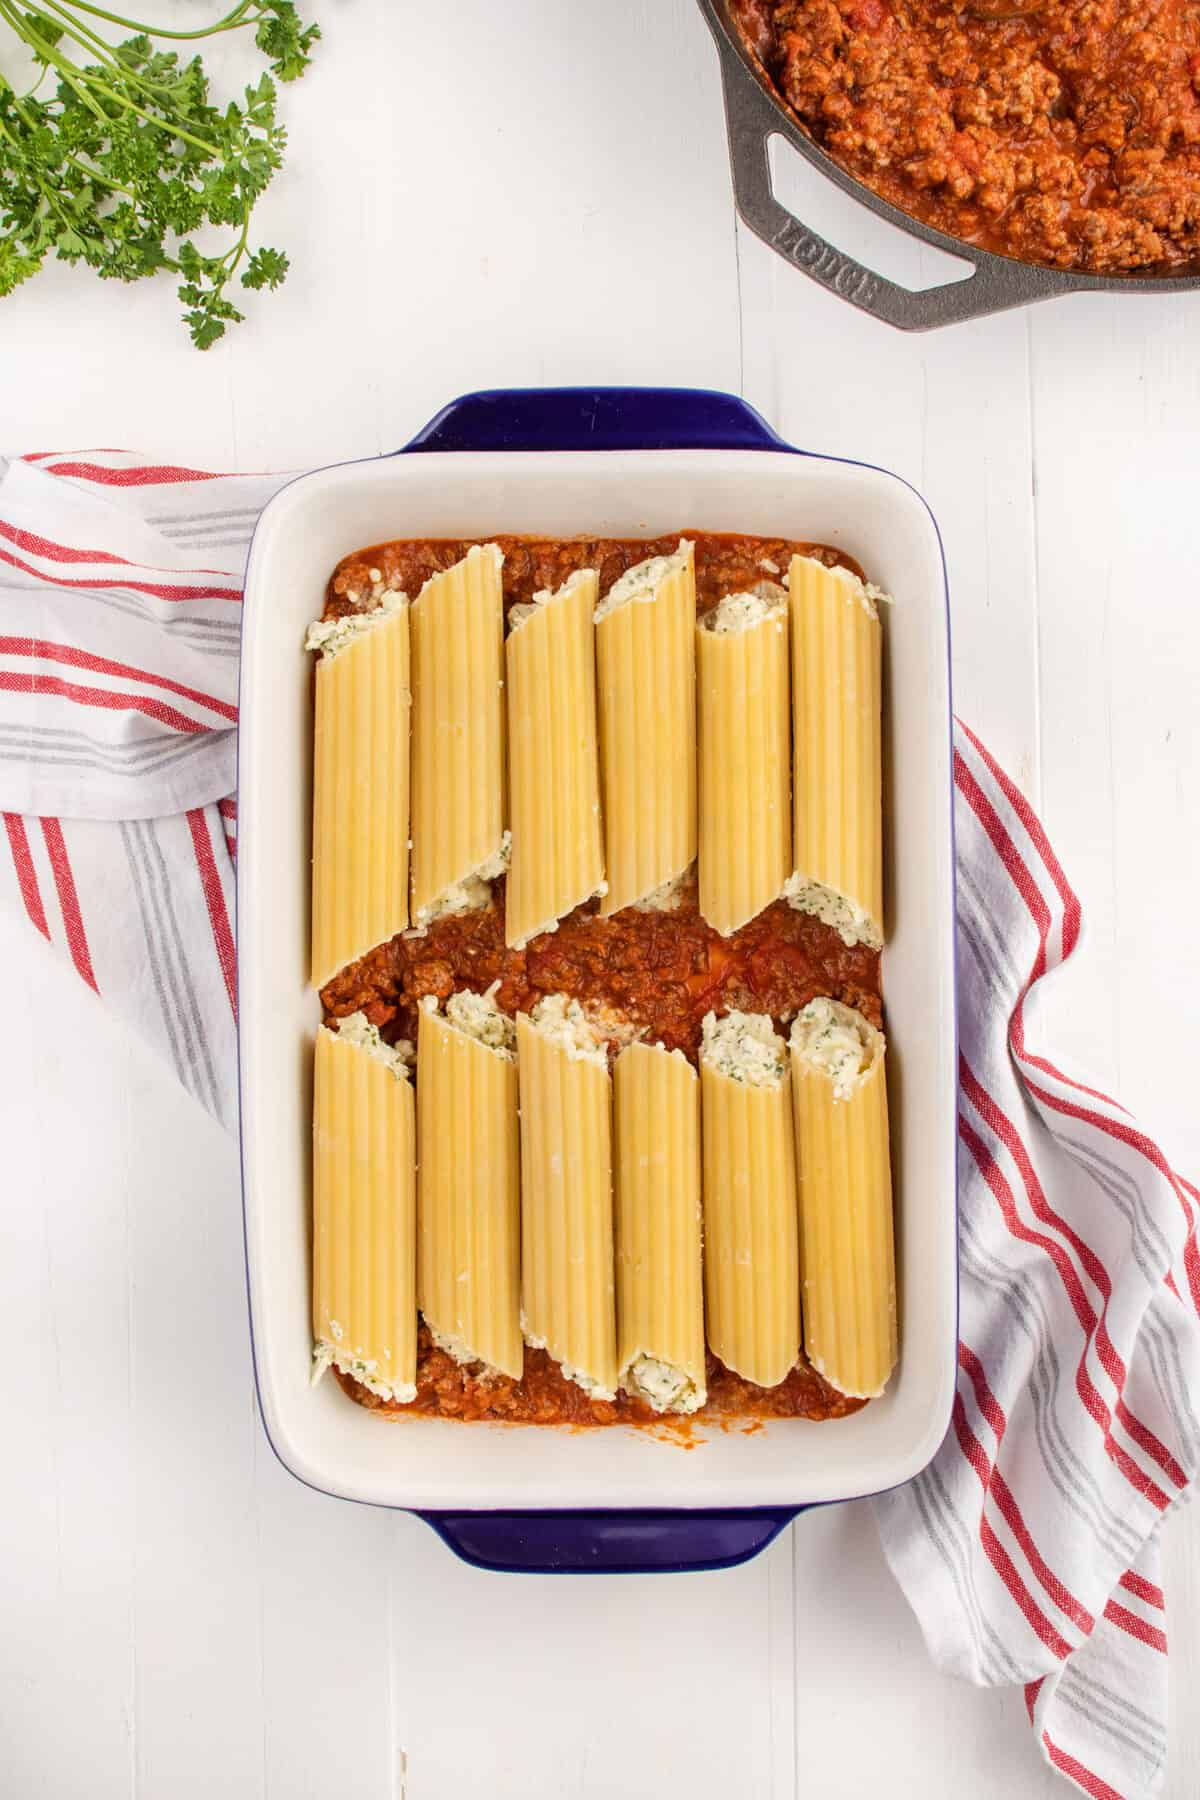 filling manicotti pasta and placing them into the baking pan